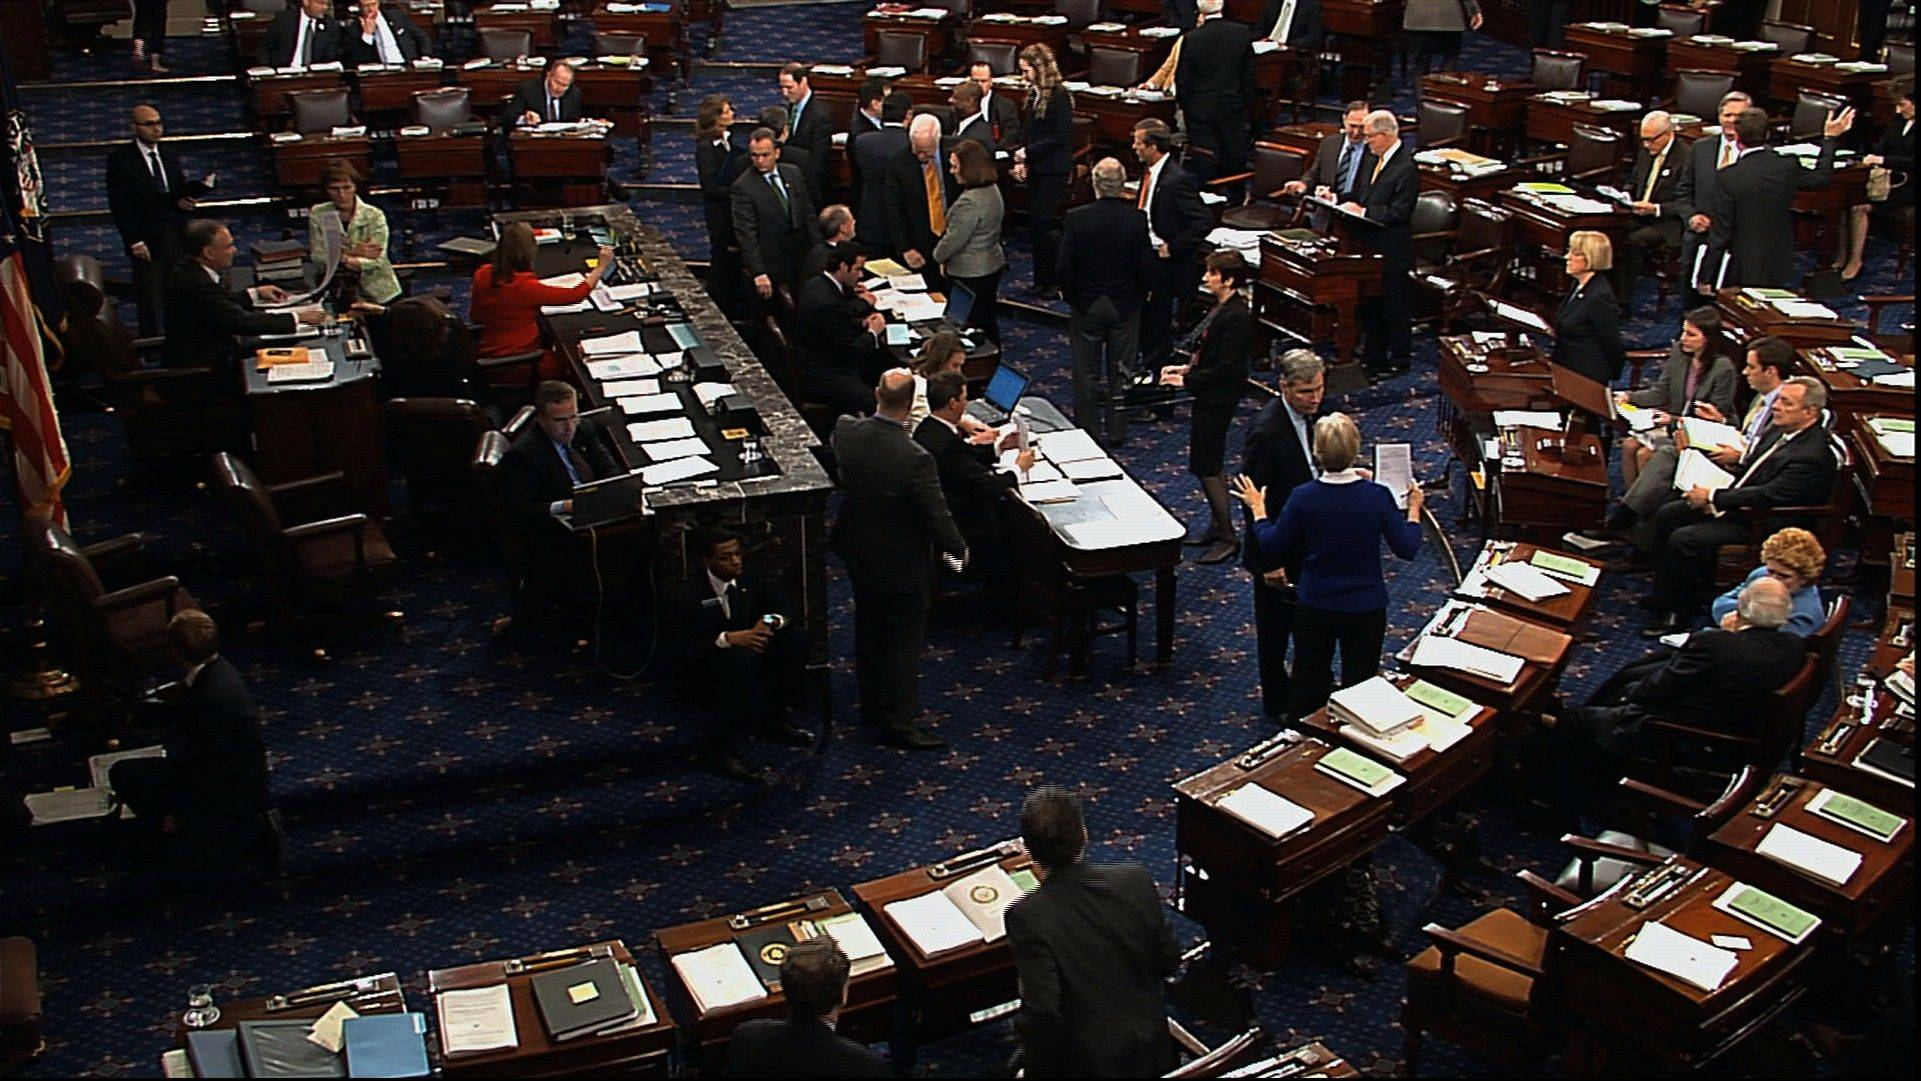 In this video image from Senate Television, senators speak Friday on the floor of the Senate during voting on an amendment to the budget resolution at the Capitolin Washington.